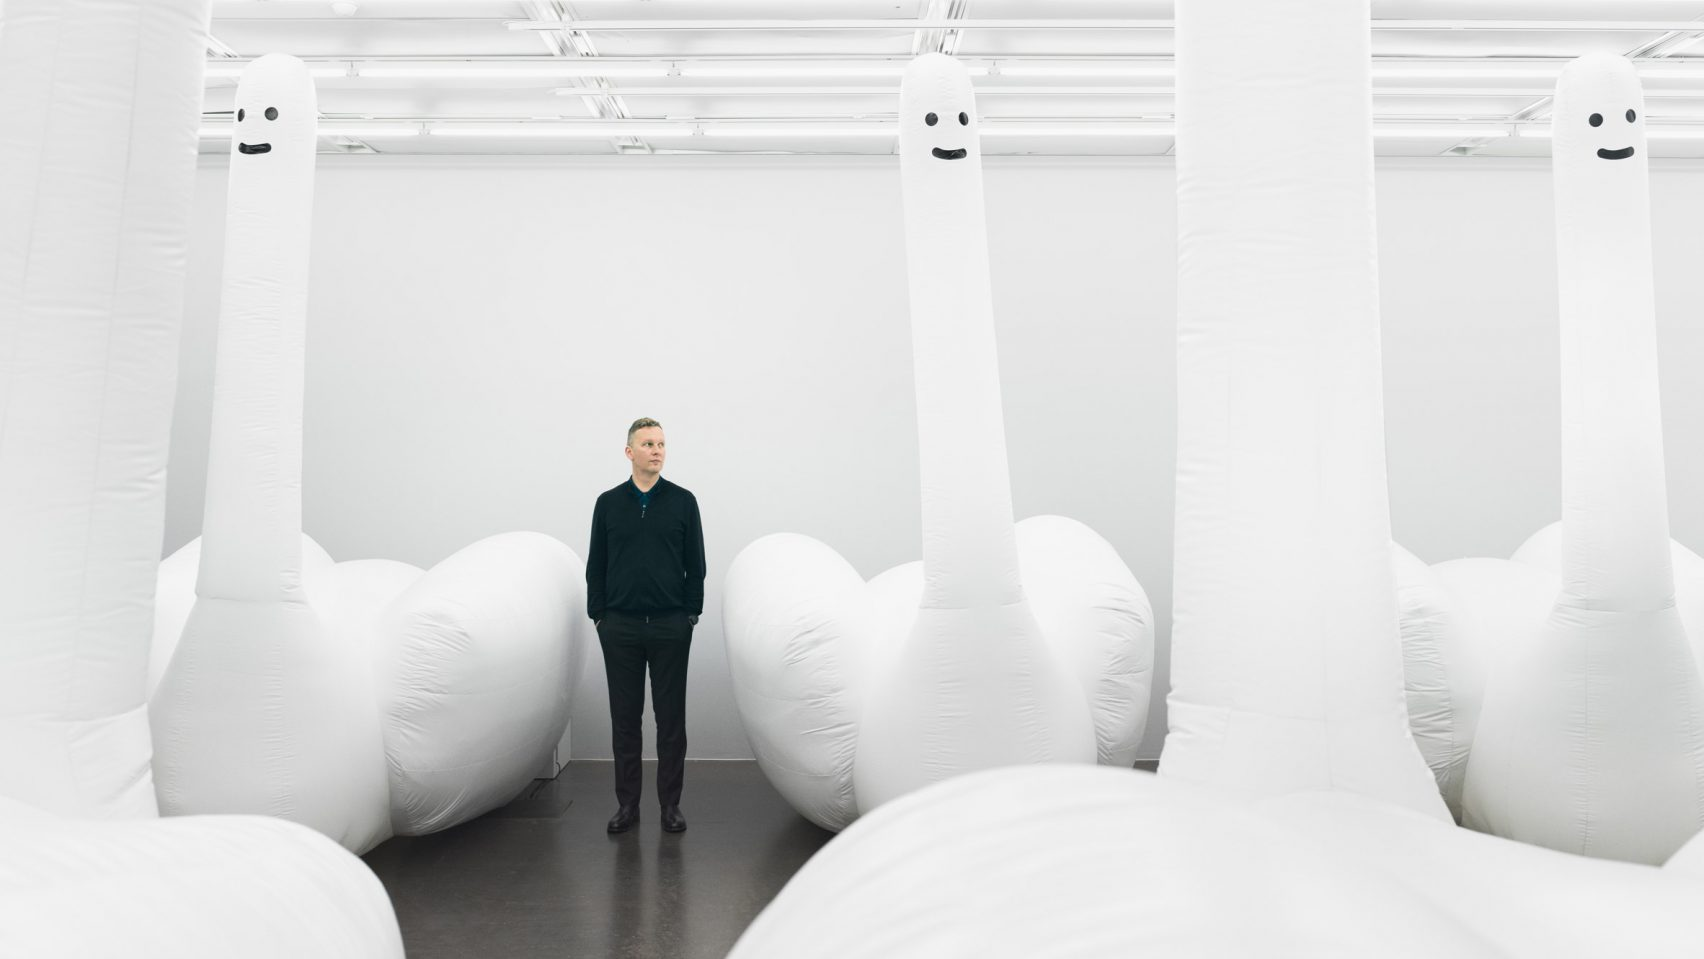 david-shrigley-inflatable-swan-exhibition-design_dezeen_2364_hero-1-1704x959.jpg